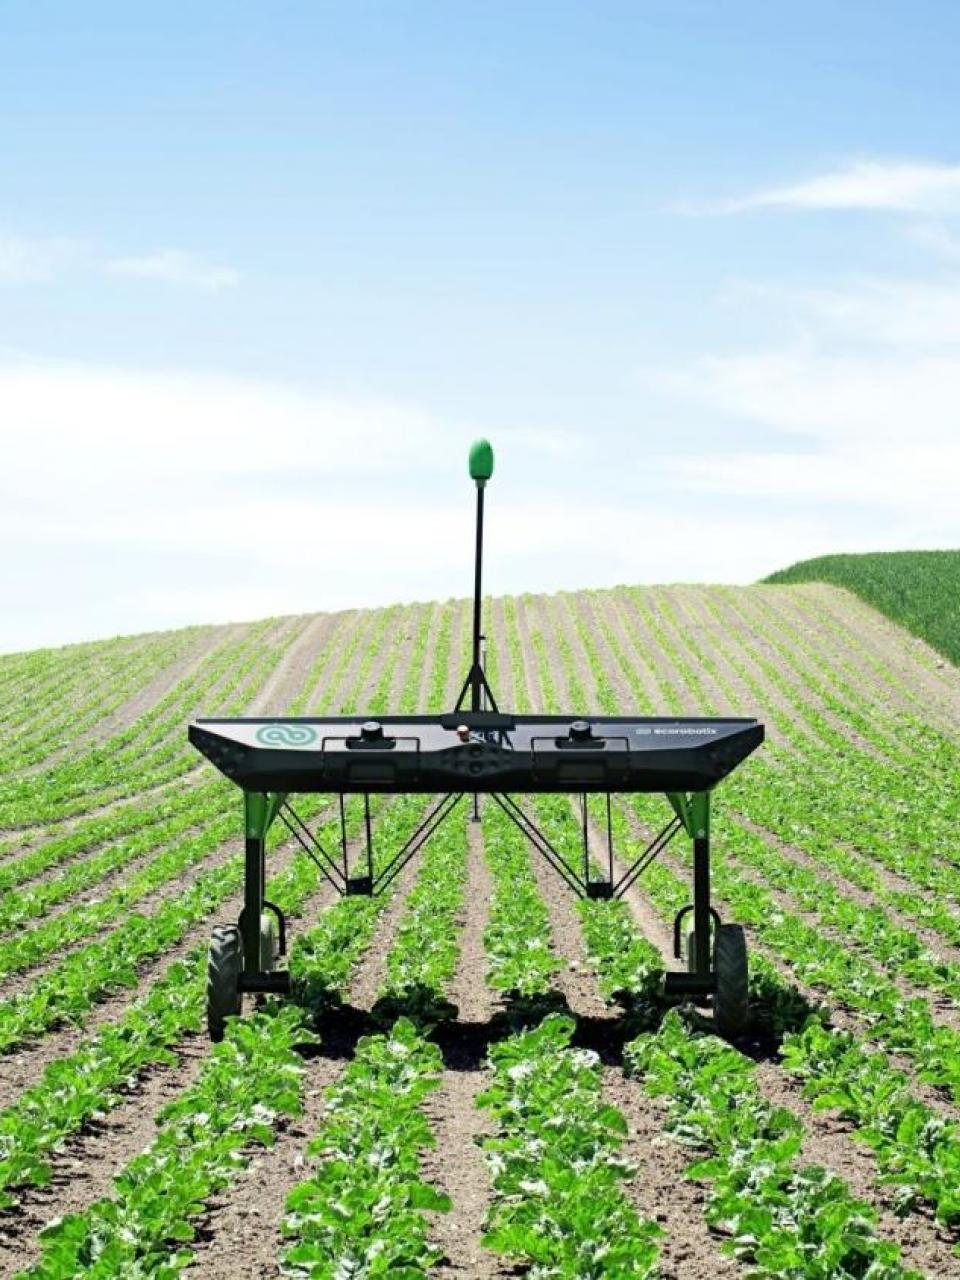 90% less herbicide thanks to the robot's targeted weeding © ecoRobotix